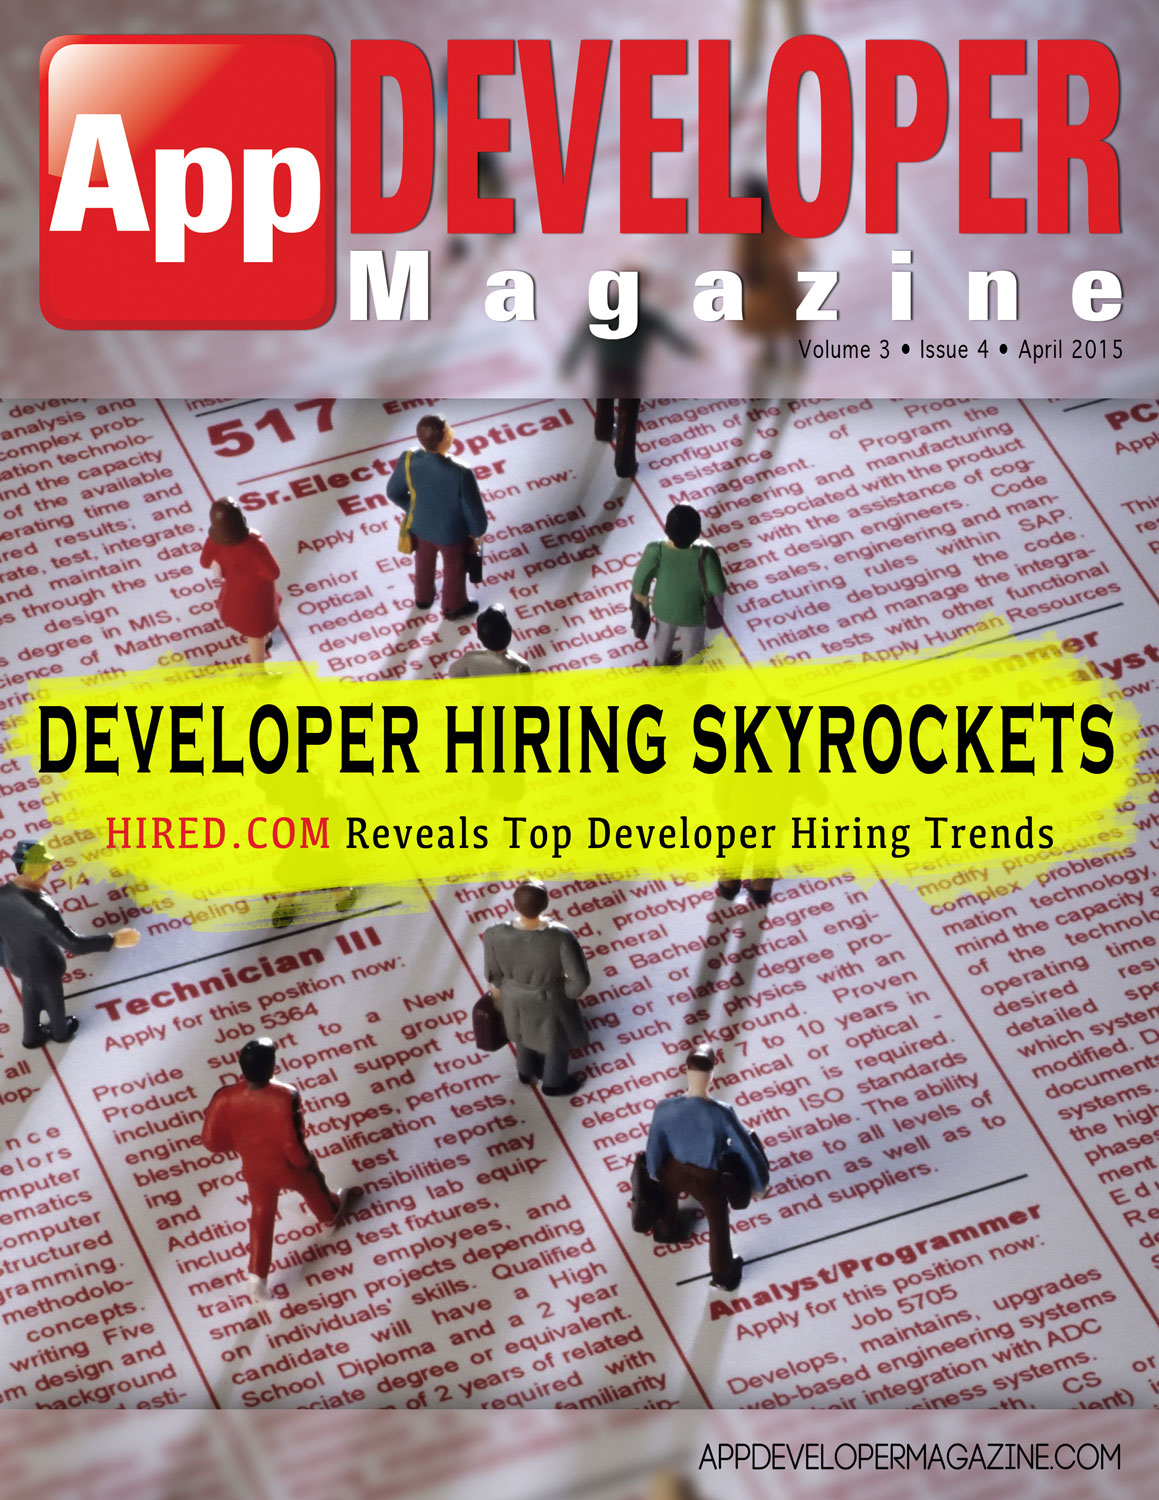 App Developer Magazine April 2015 Cover